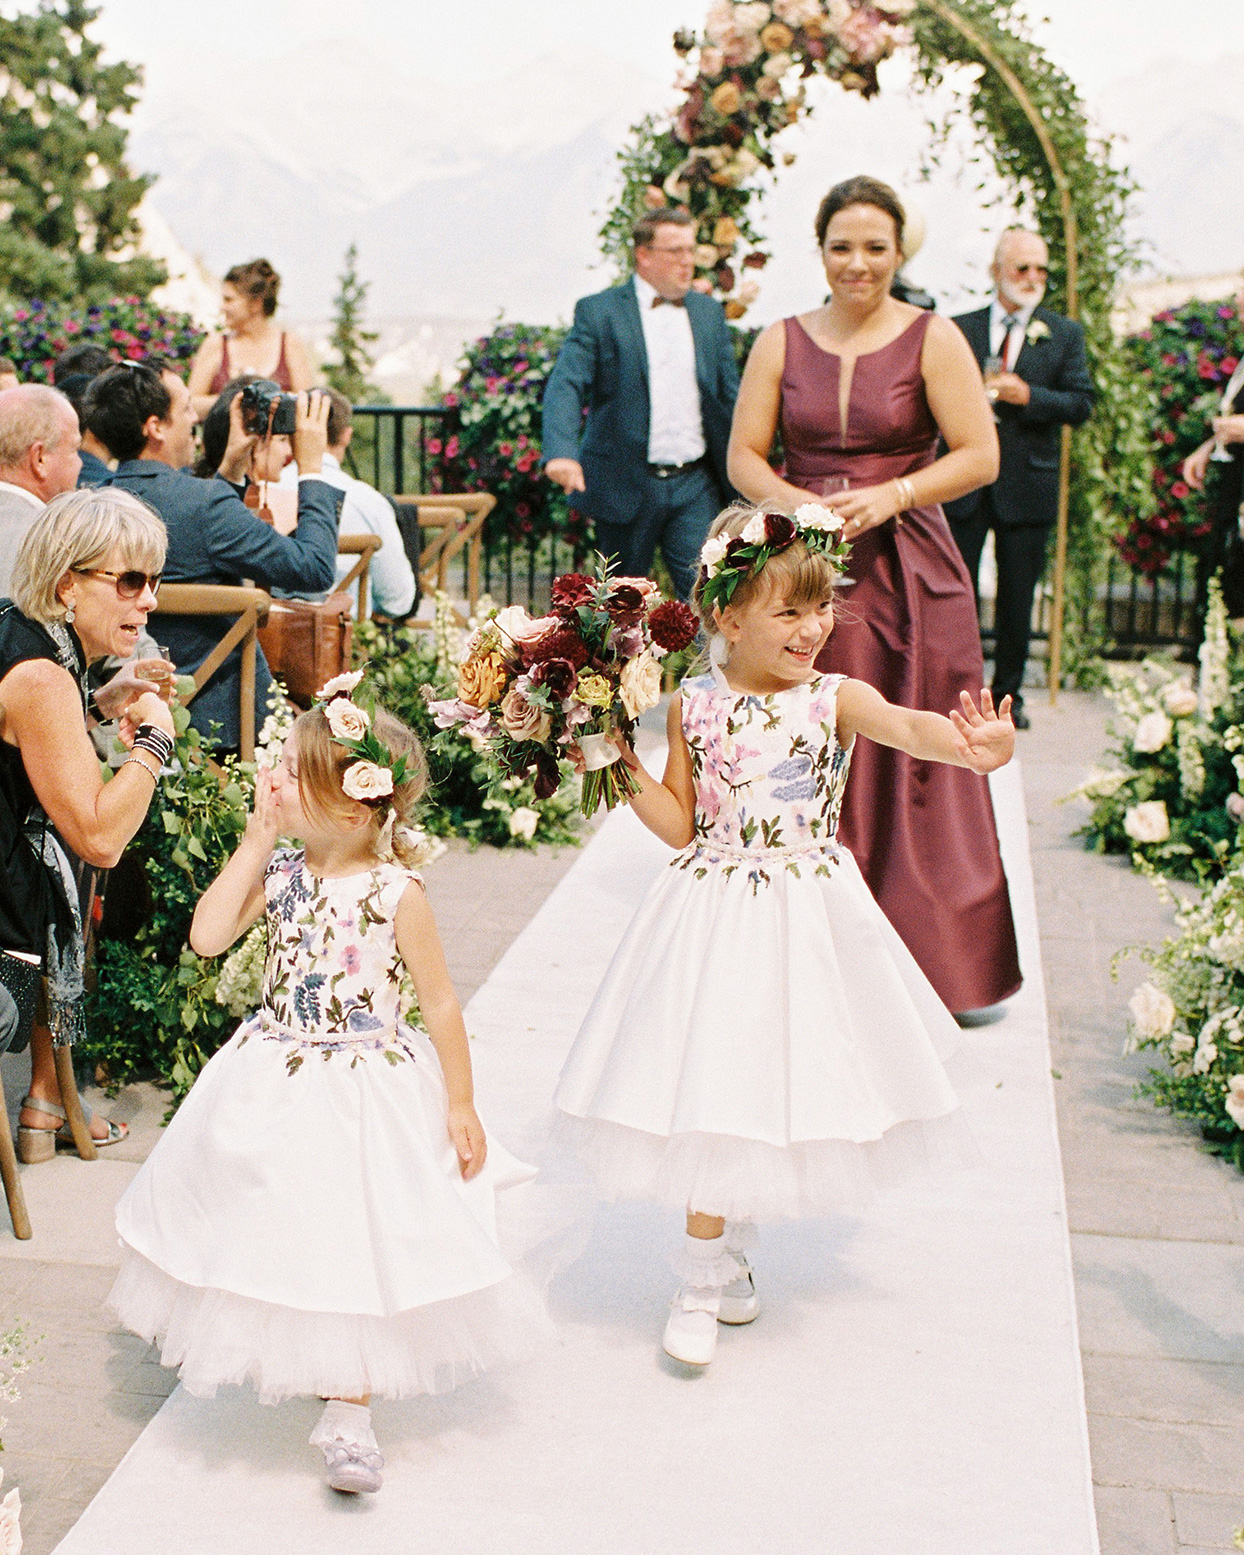 katie nicholas wedding flower girls in white and floral